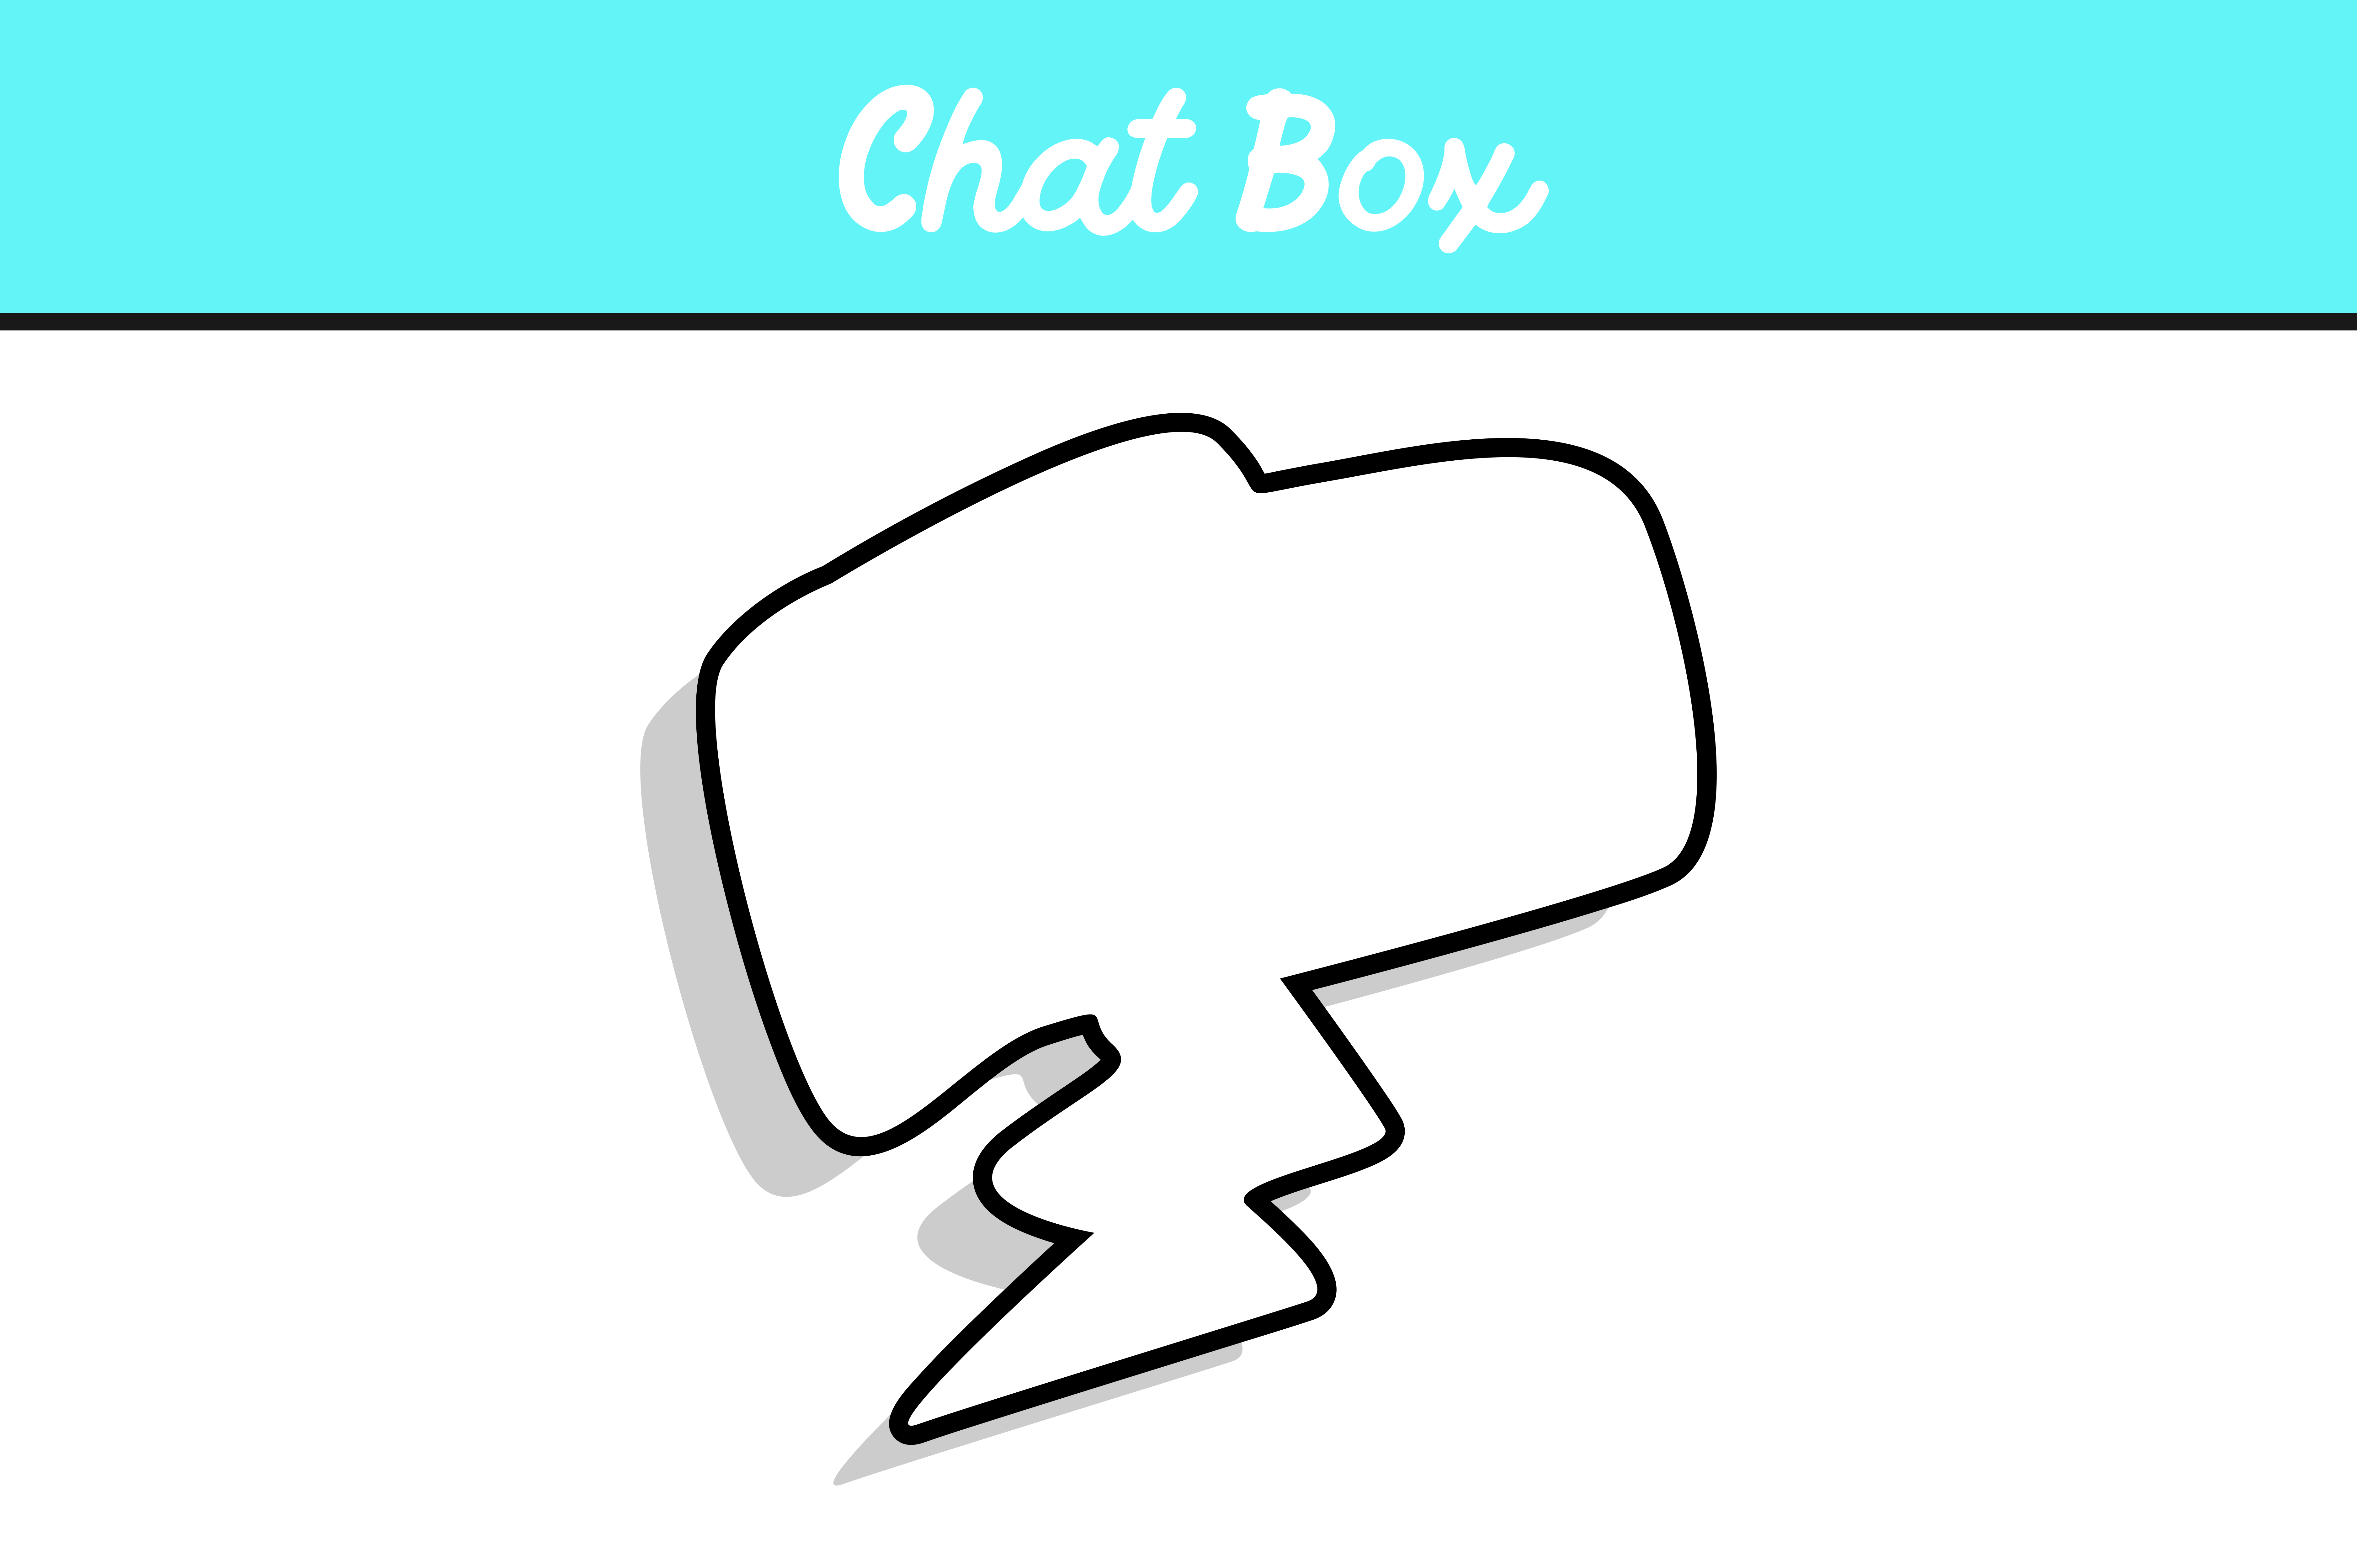 Download Free Square Chat Box Graphic By Arief Sapta Adjie Creative Fabrica for Cricut Explore, Silhouette and other cutting machines.